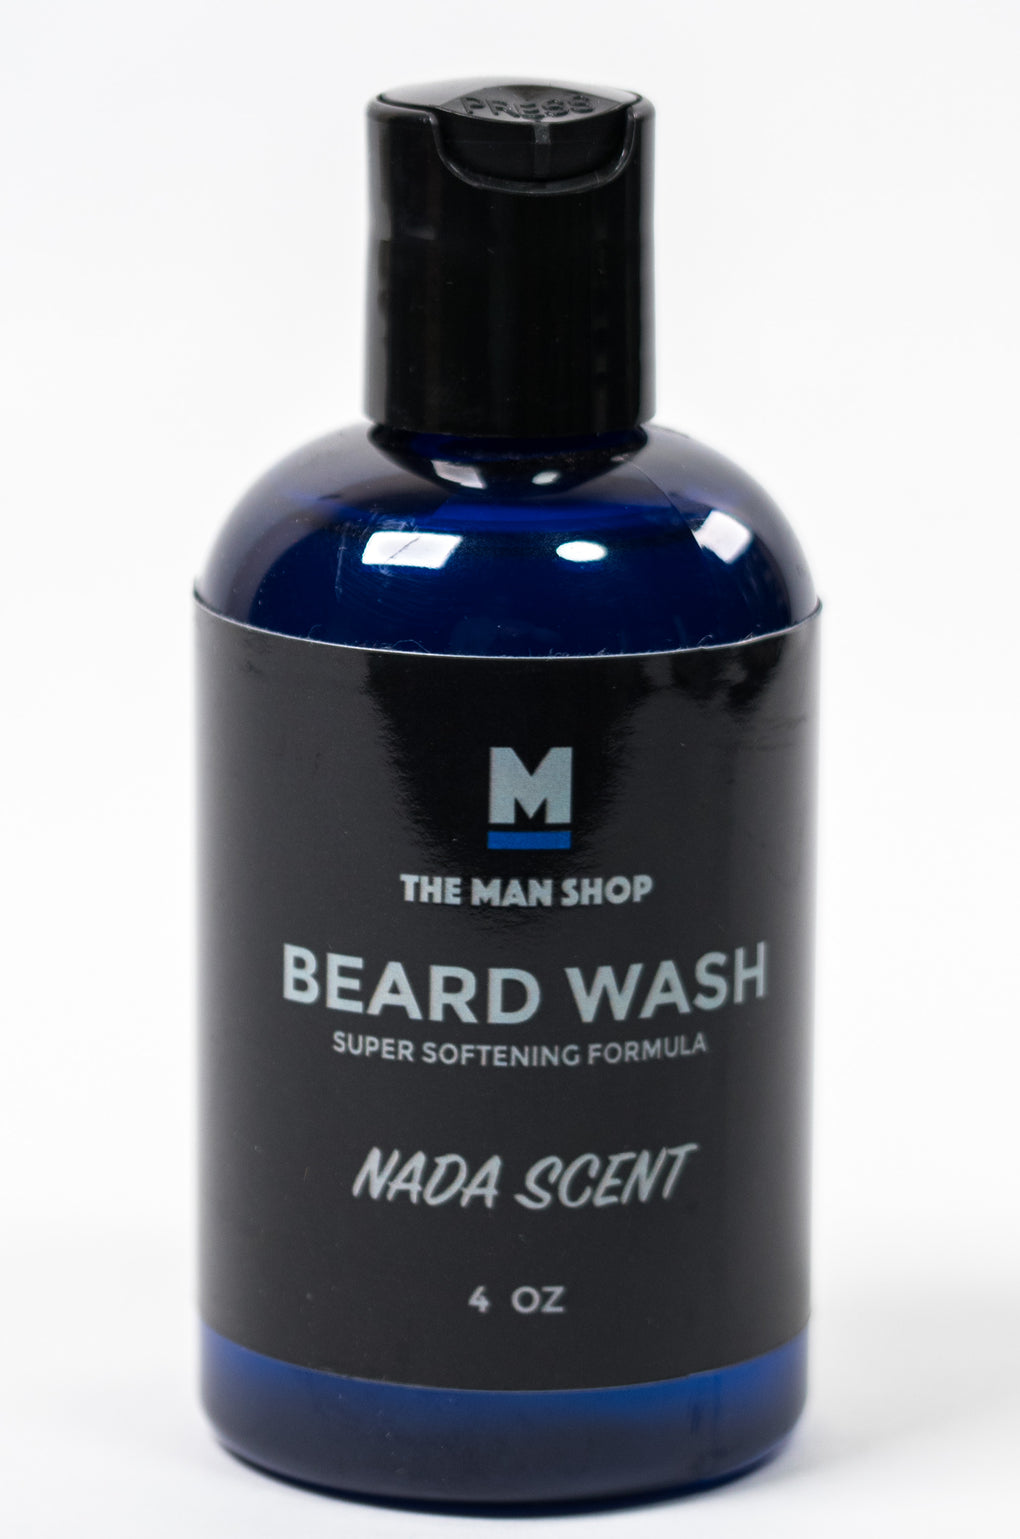 The ManShop Nada Scent Beard Wash at Consigliere